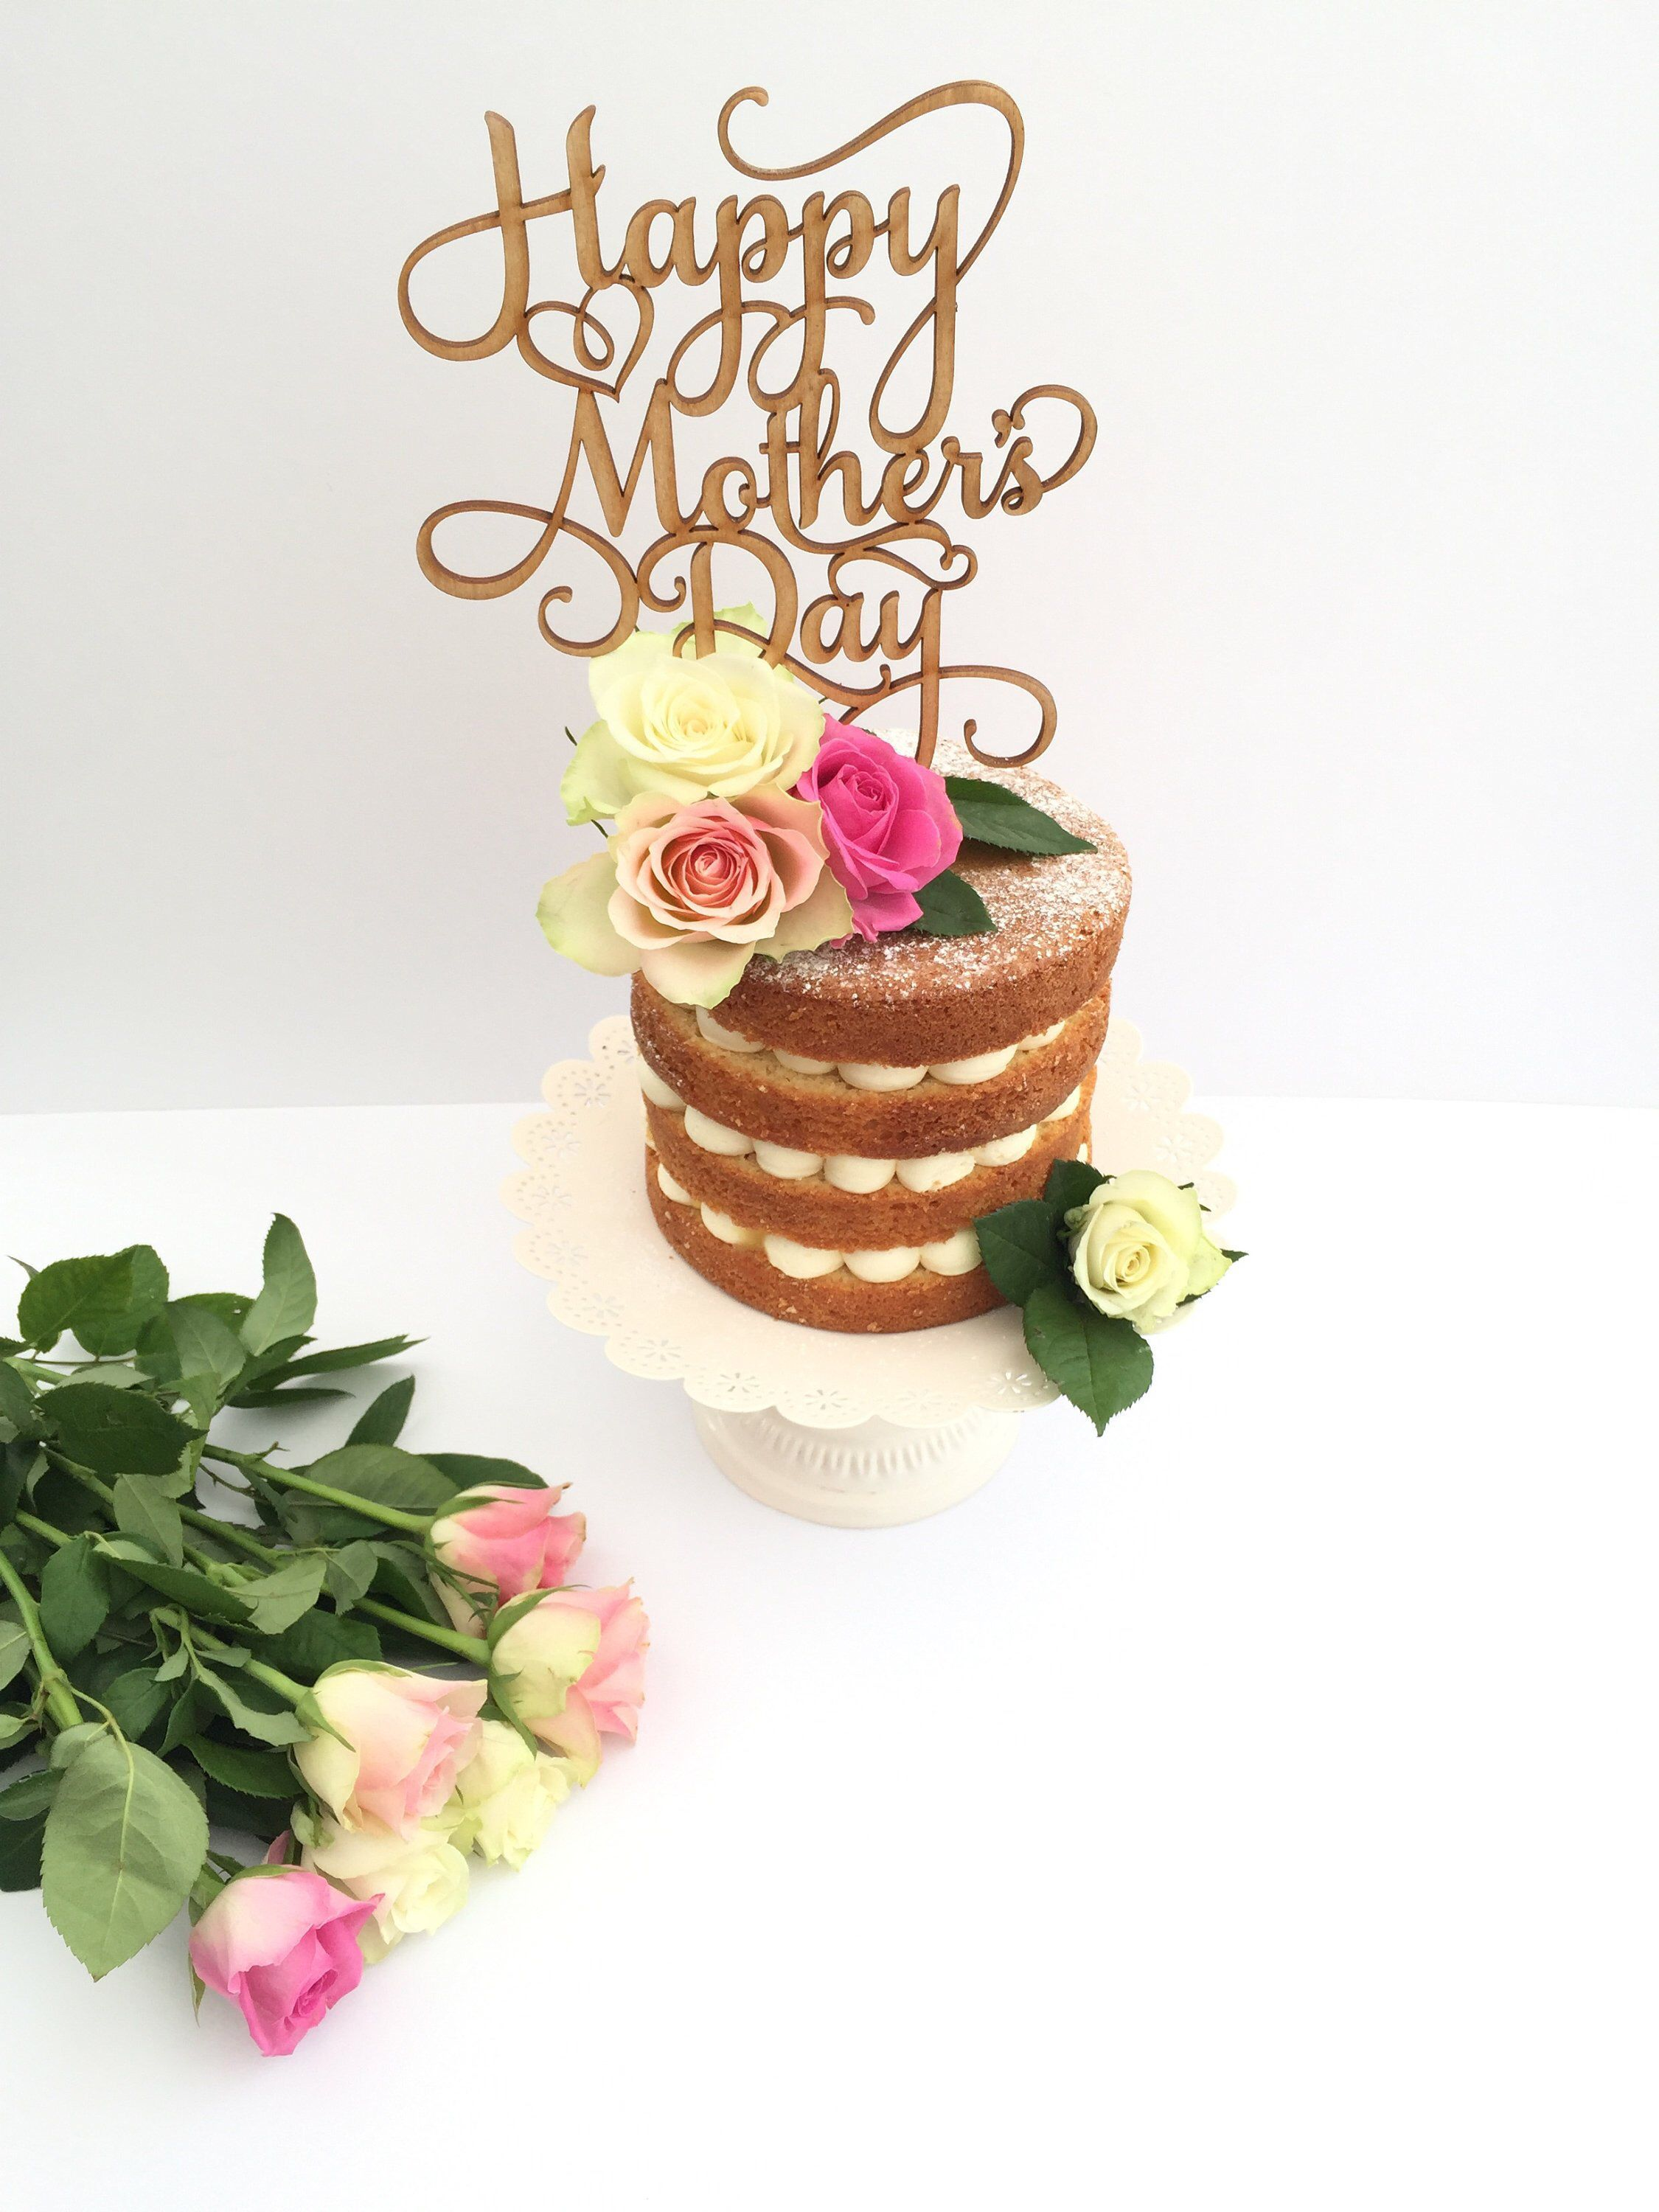 Excited To Share The Latest Addition To My Etsy Shop Happy Mothers Day Cake Topper Wooden Topper Mothers Day Cake Mothers Day Desserts Happy Mothers Day